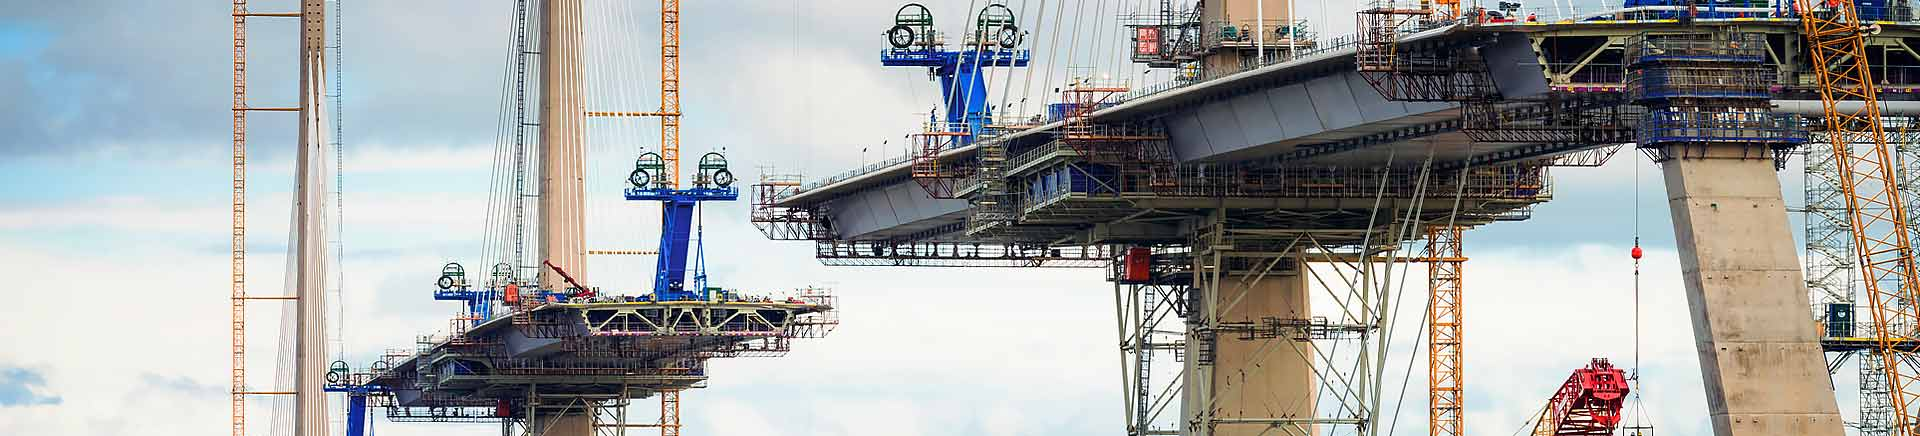 Rigging-and-Erection-Plan-Engineering-r2